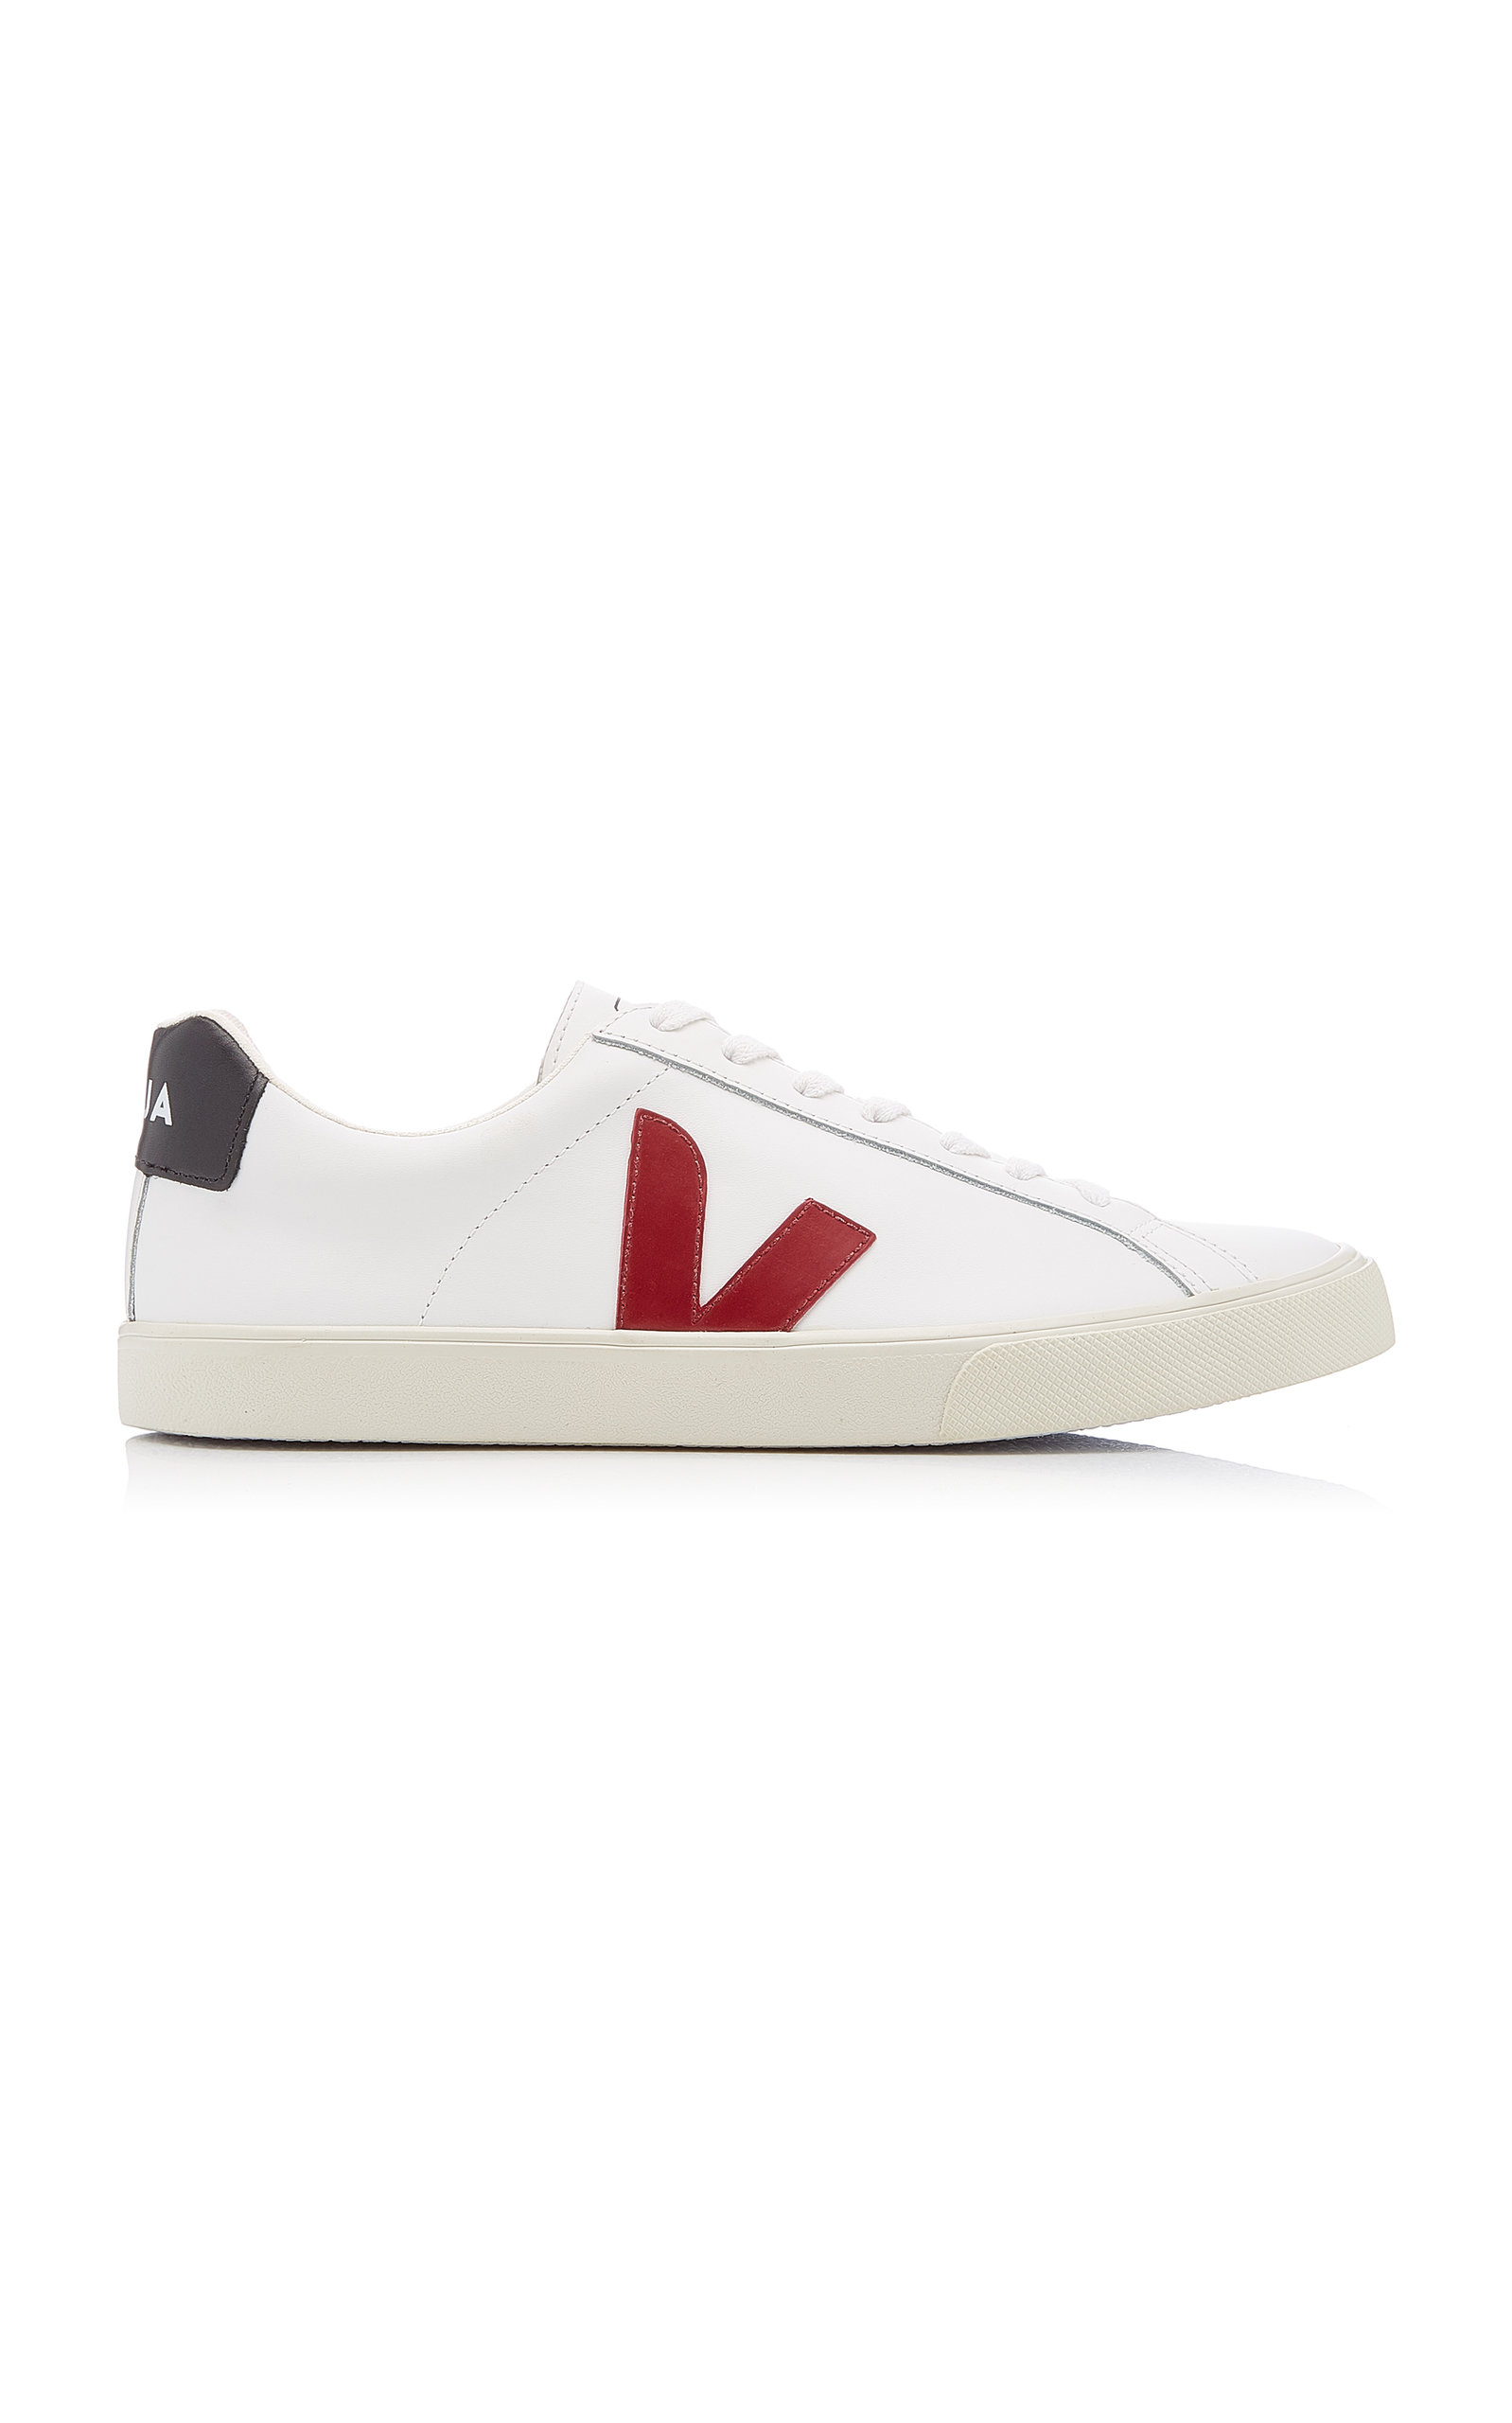 Veja | VEJA Esplar Leather Low-Top Sneakers | Clouty